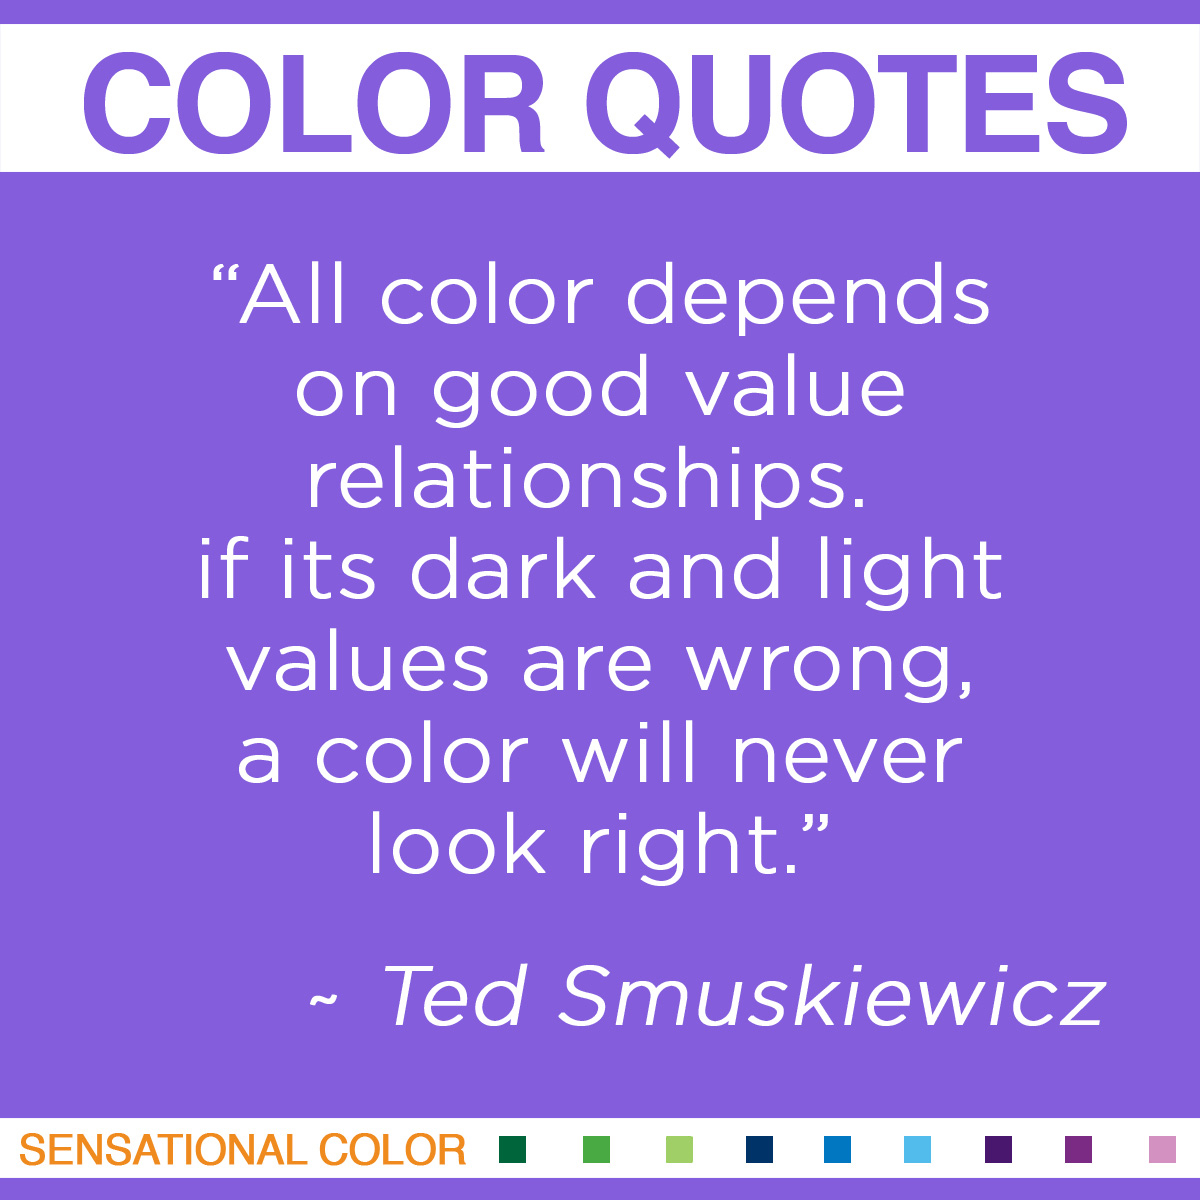 """All color depends on good value relationships. If its dark and light values are wrong, a color will never look right."" - Ted Smuskiewicz"